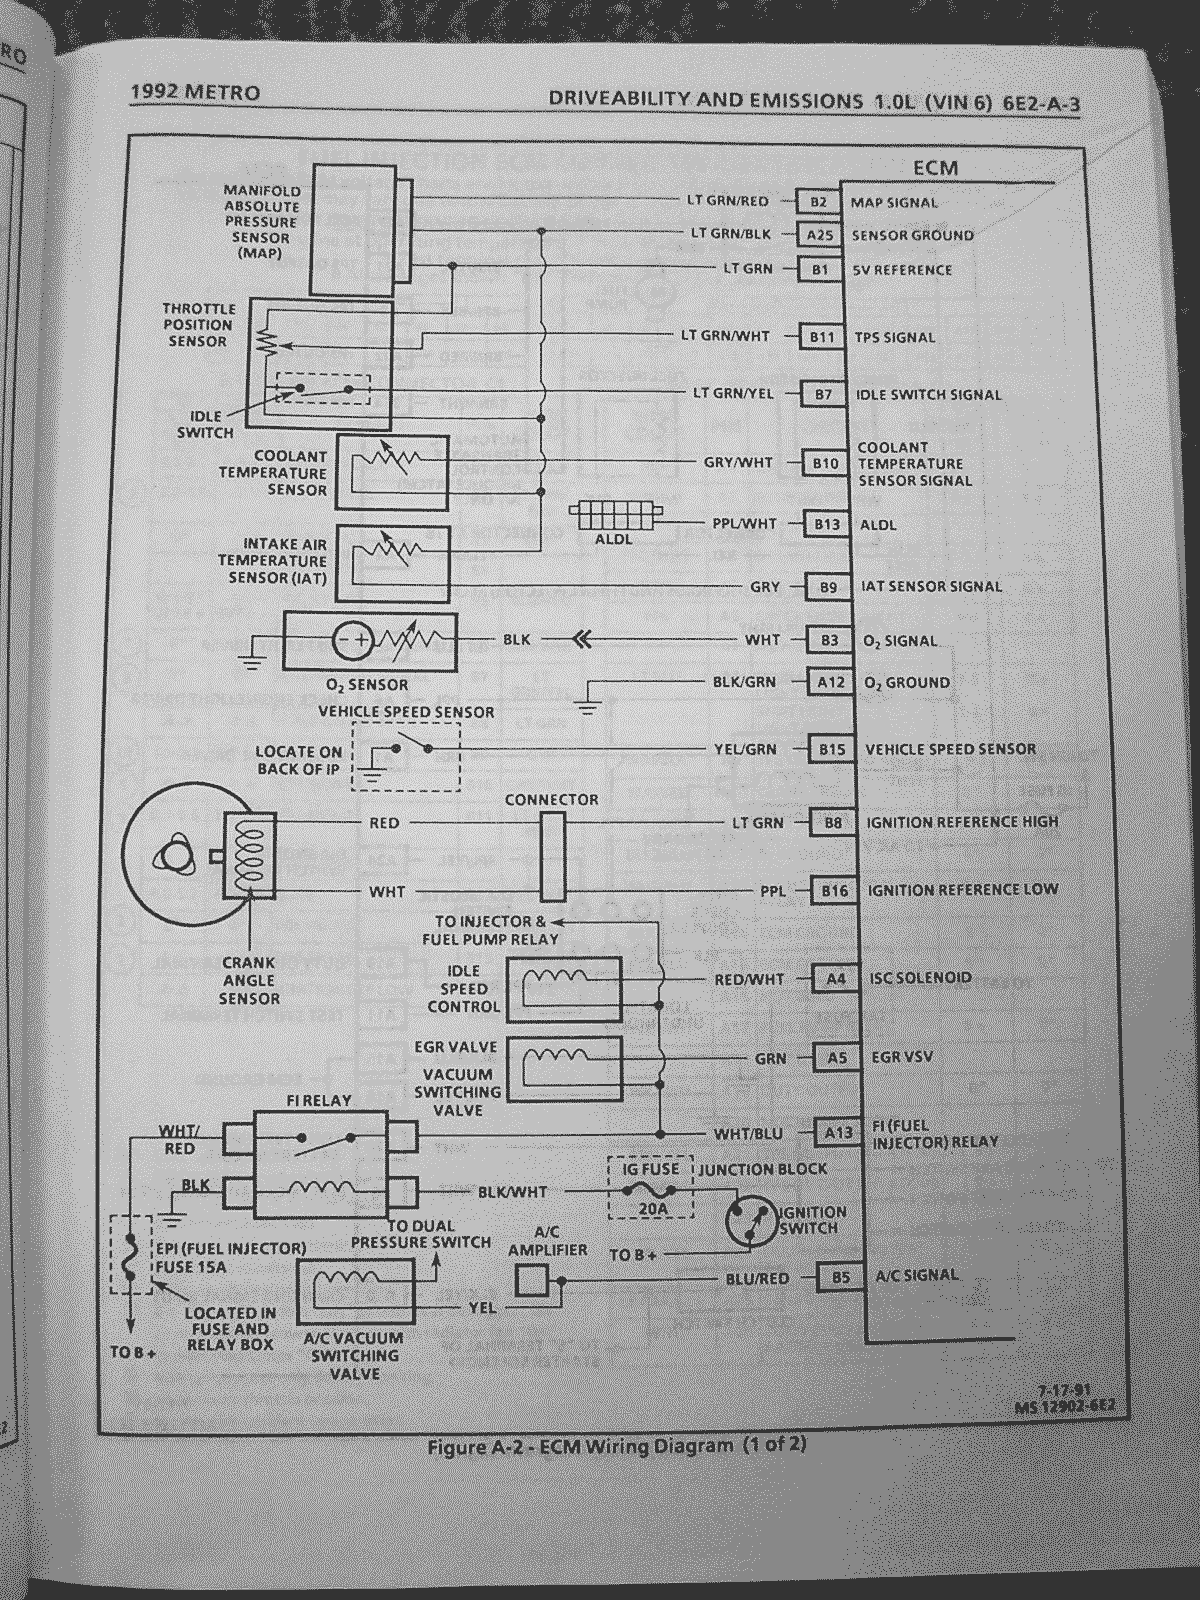 chevy metro wiring diagram dash geo metro and suzuki swift wiring diagrams metroxfi com 92 94 metro 3 cylinder ecu pinouts